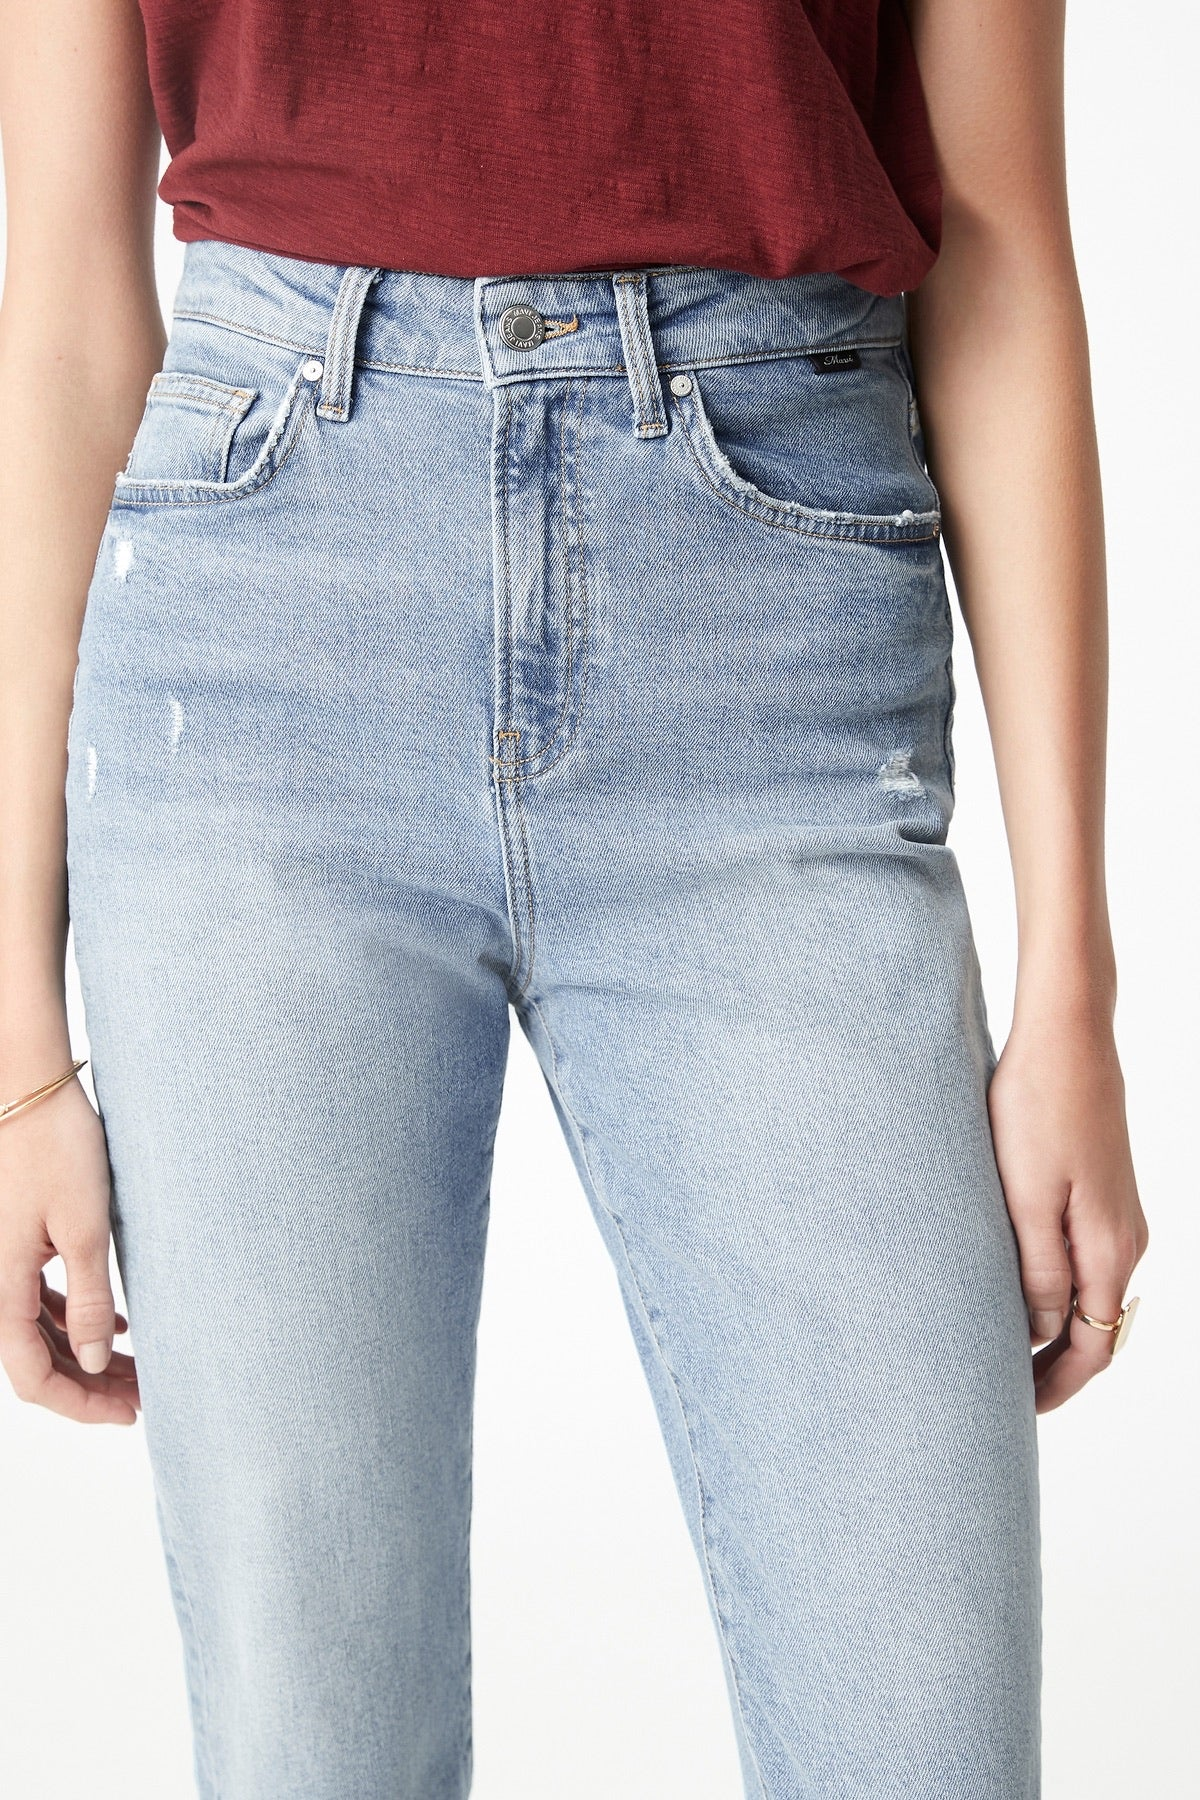 Mavi II STAR High Rise Lt Used Blue MOM jean